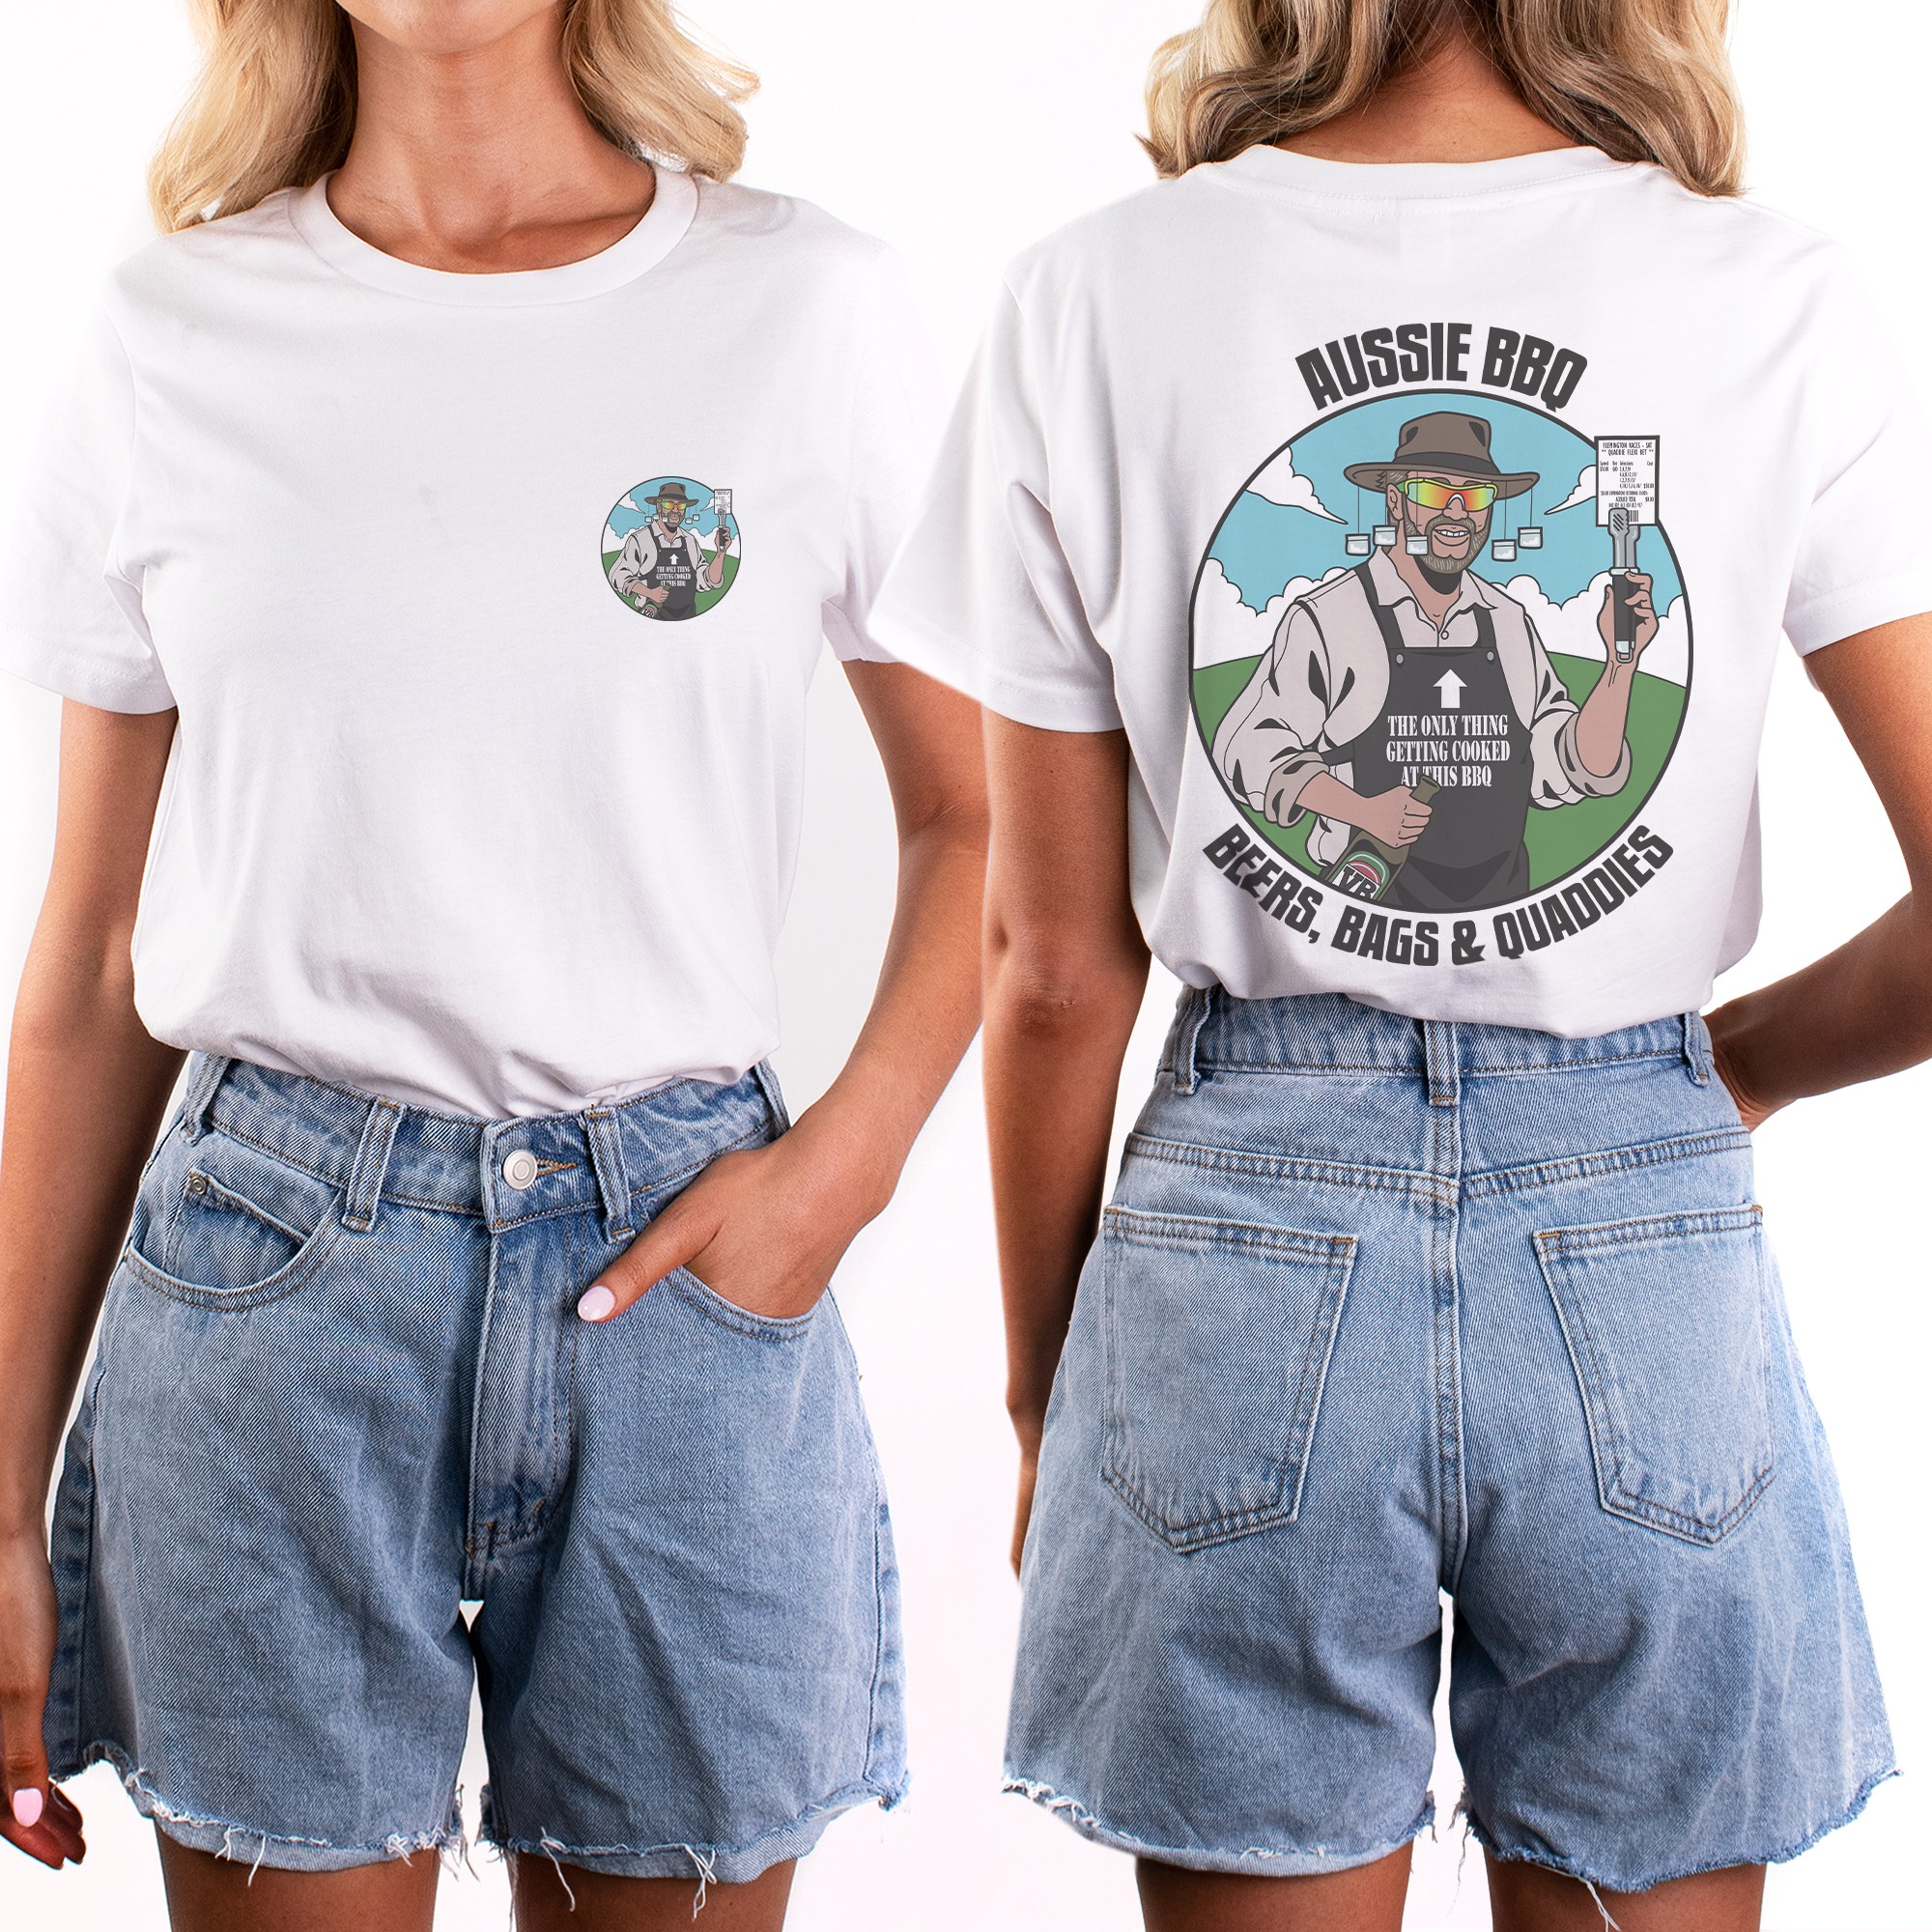 AUSSIE BBQ FRONT AND BACK TEE